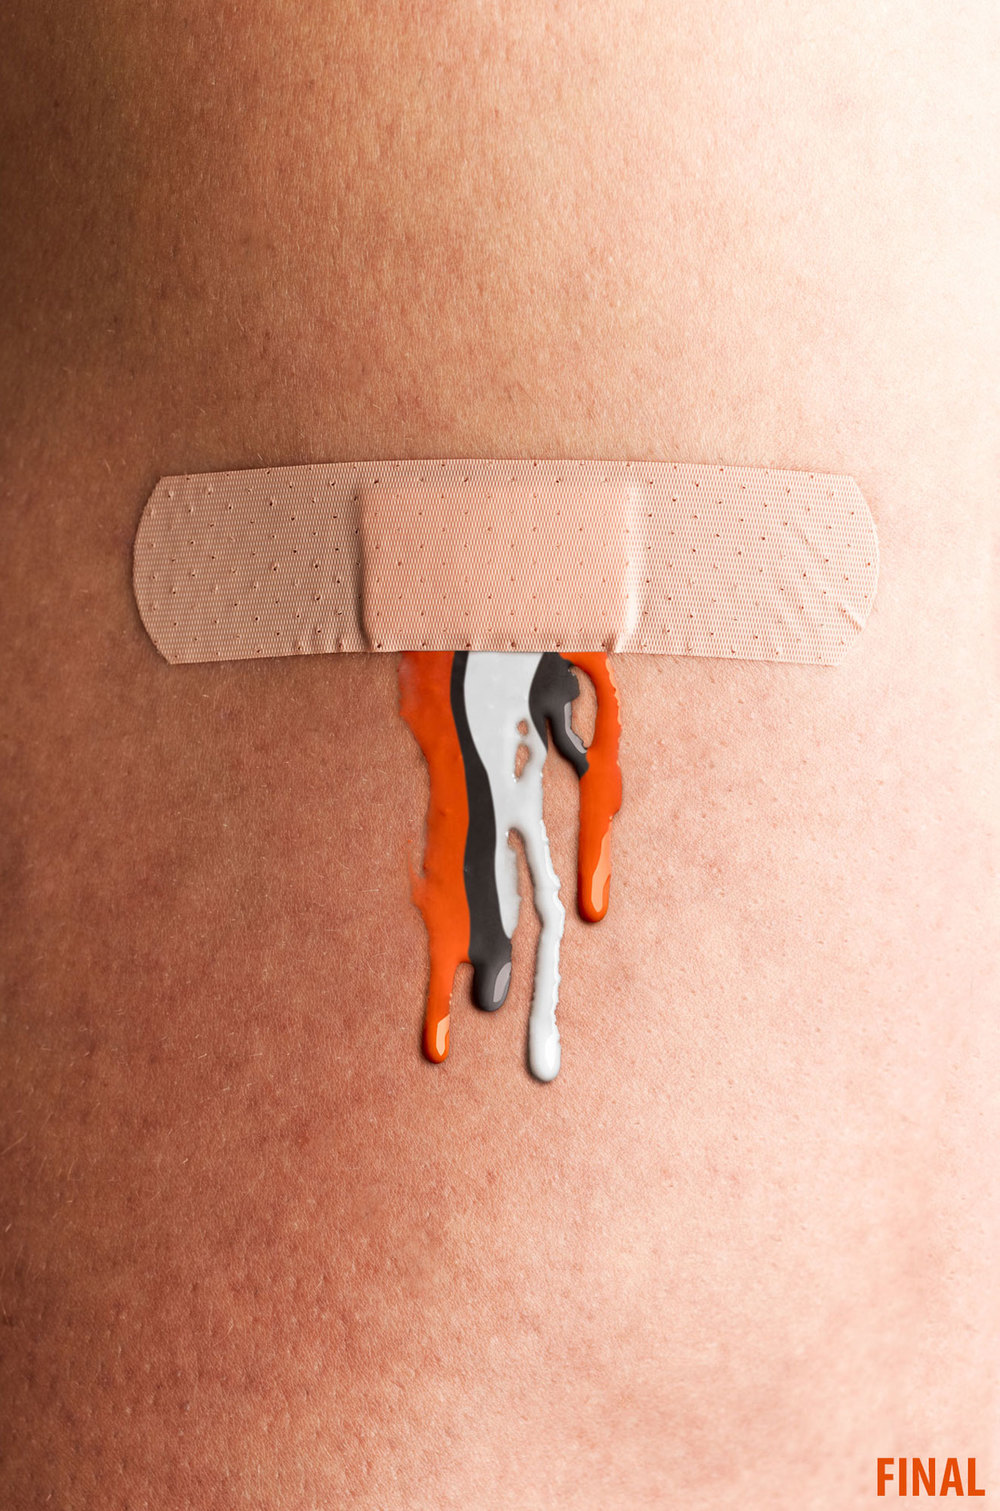 professional composite image of band aid with cleveland brown blood dripping